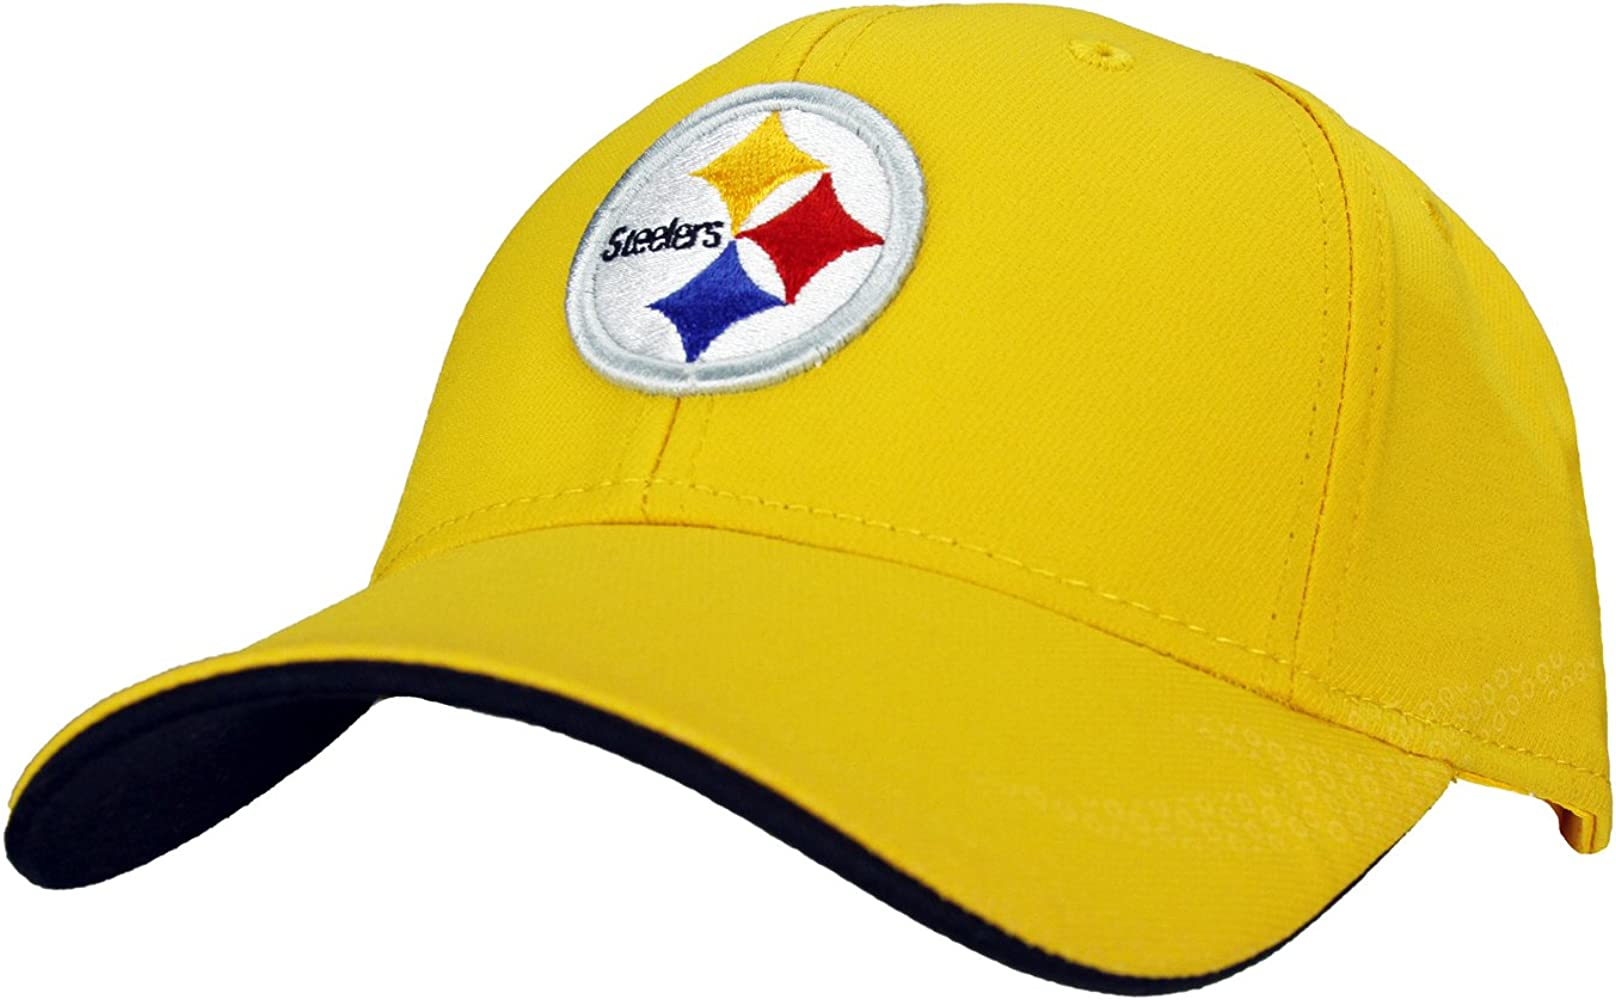 2058bb87 Pittsburgh Steelers NFL Youth Performance Flex Cap Hat